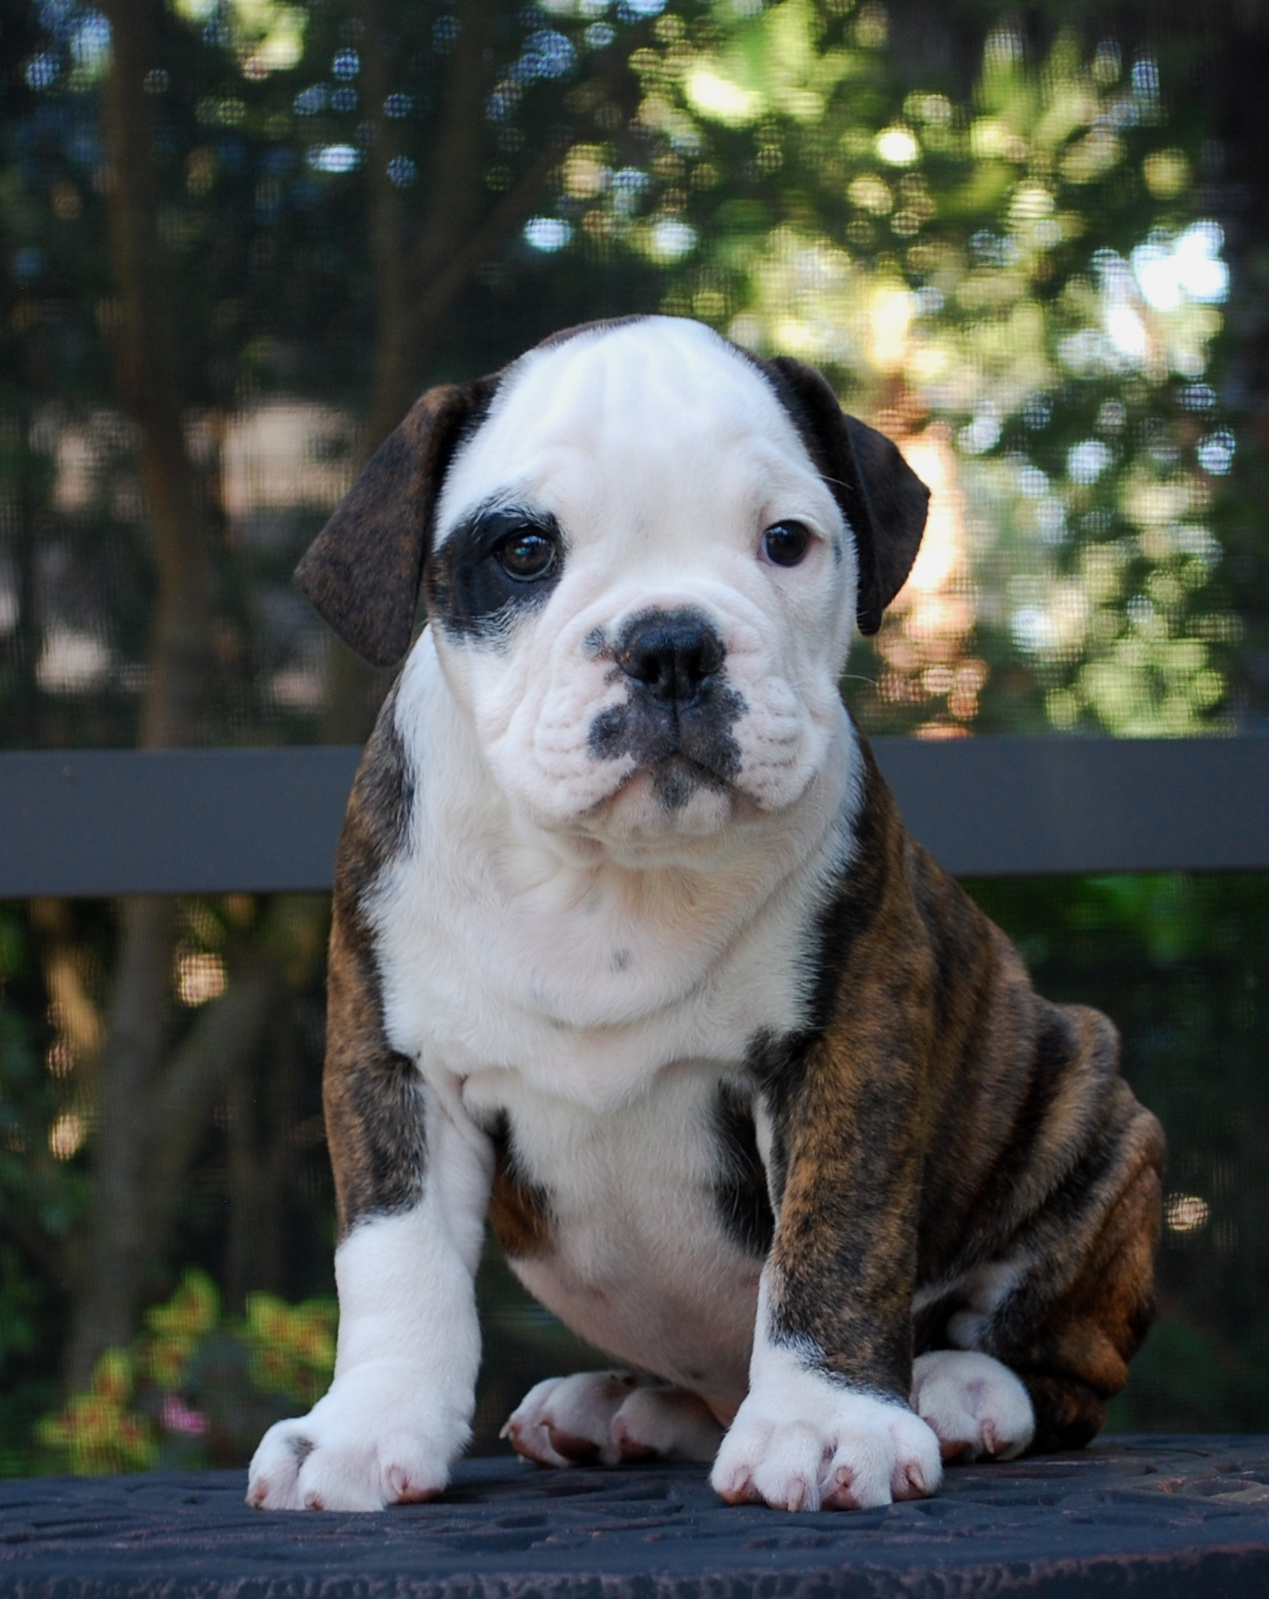 Hermes Olde English Bulldogge Puppy For Sale | Photo 3